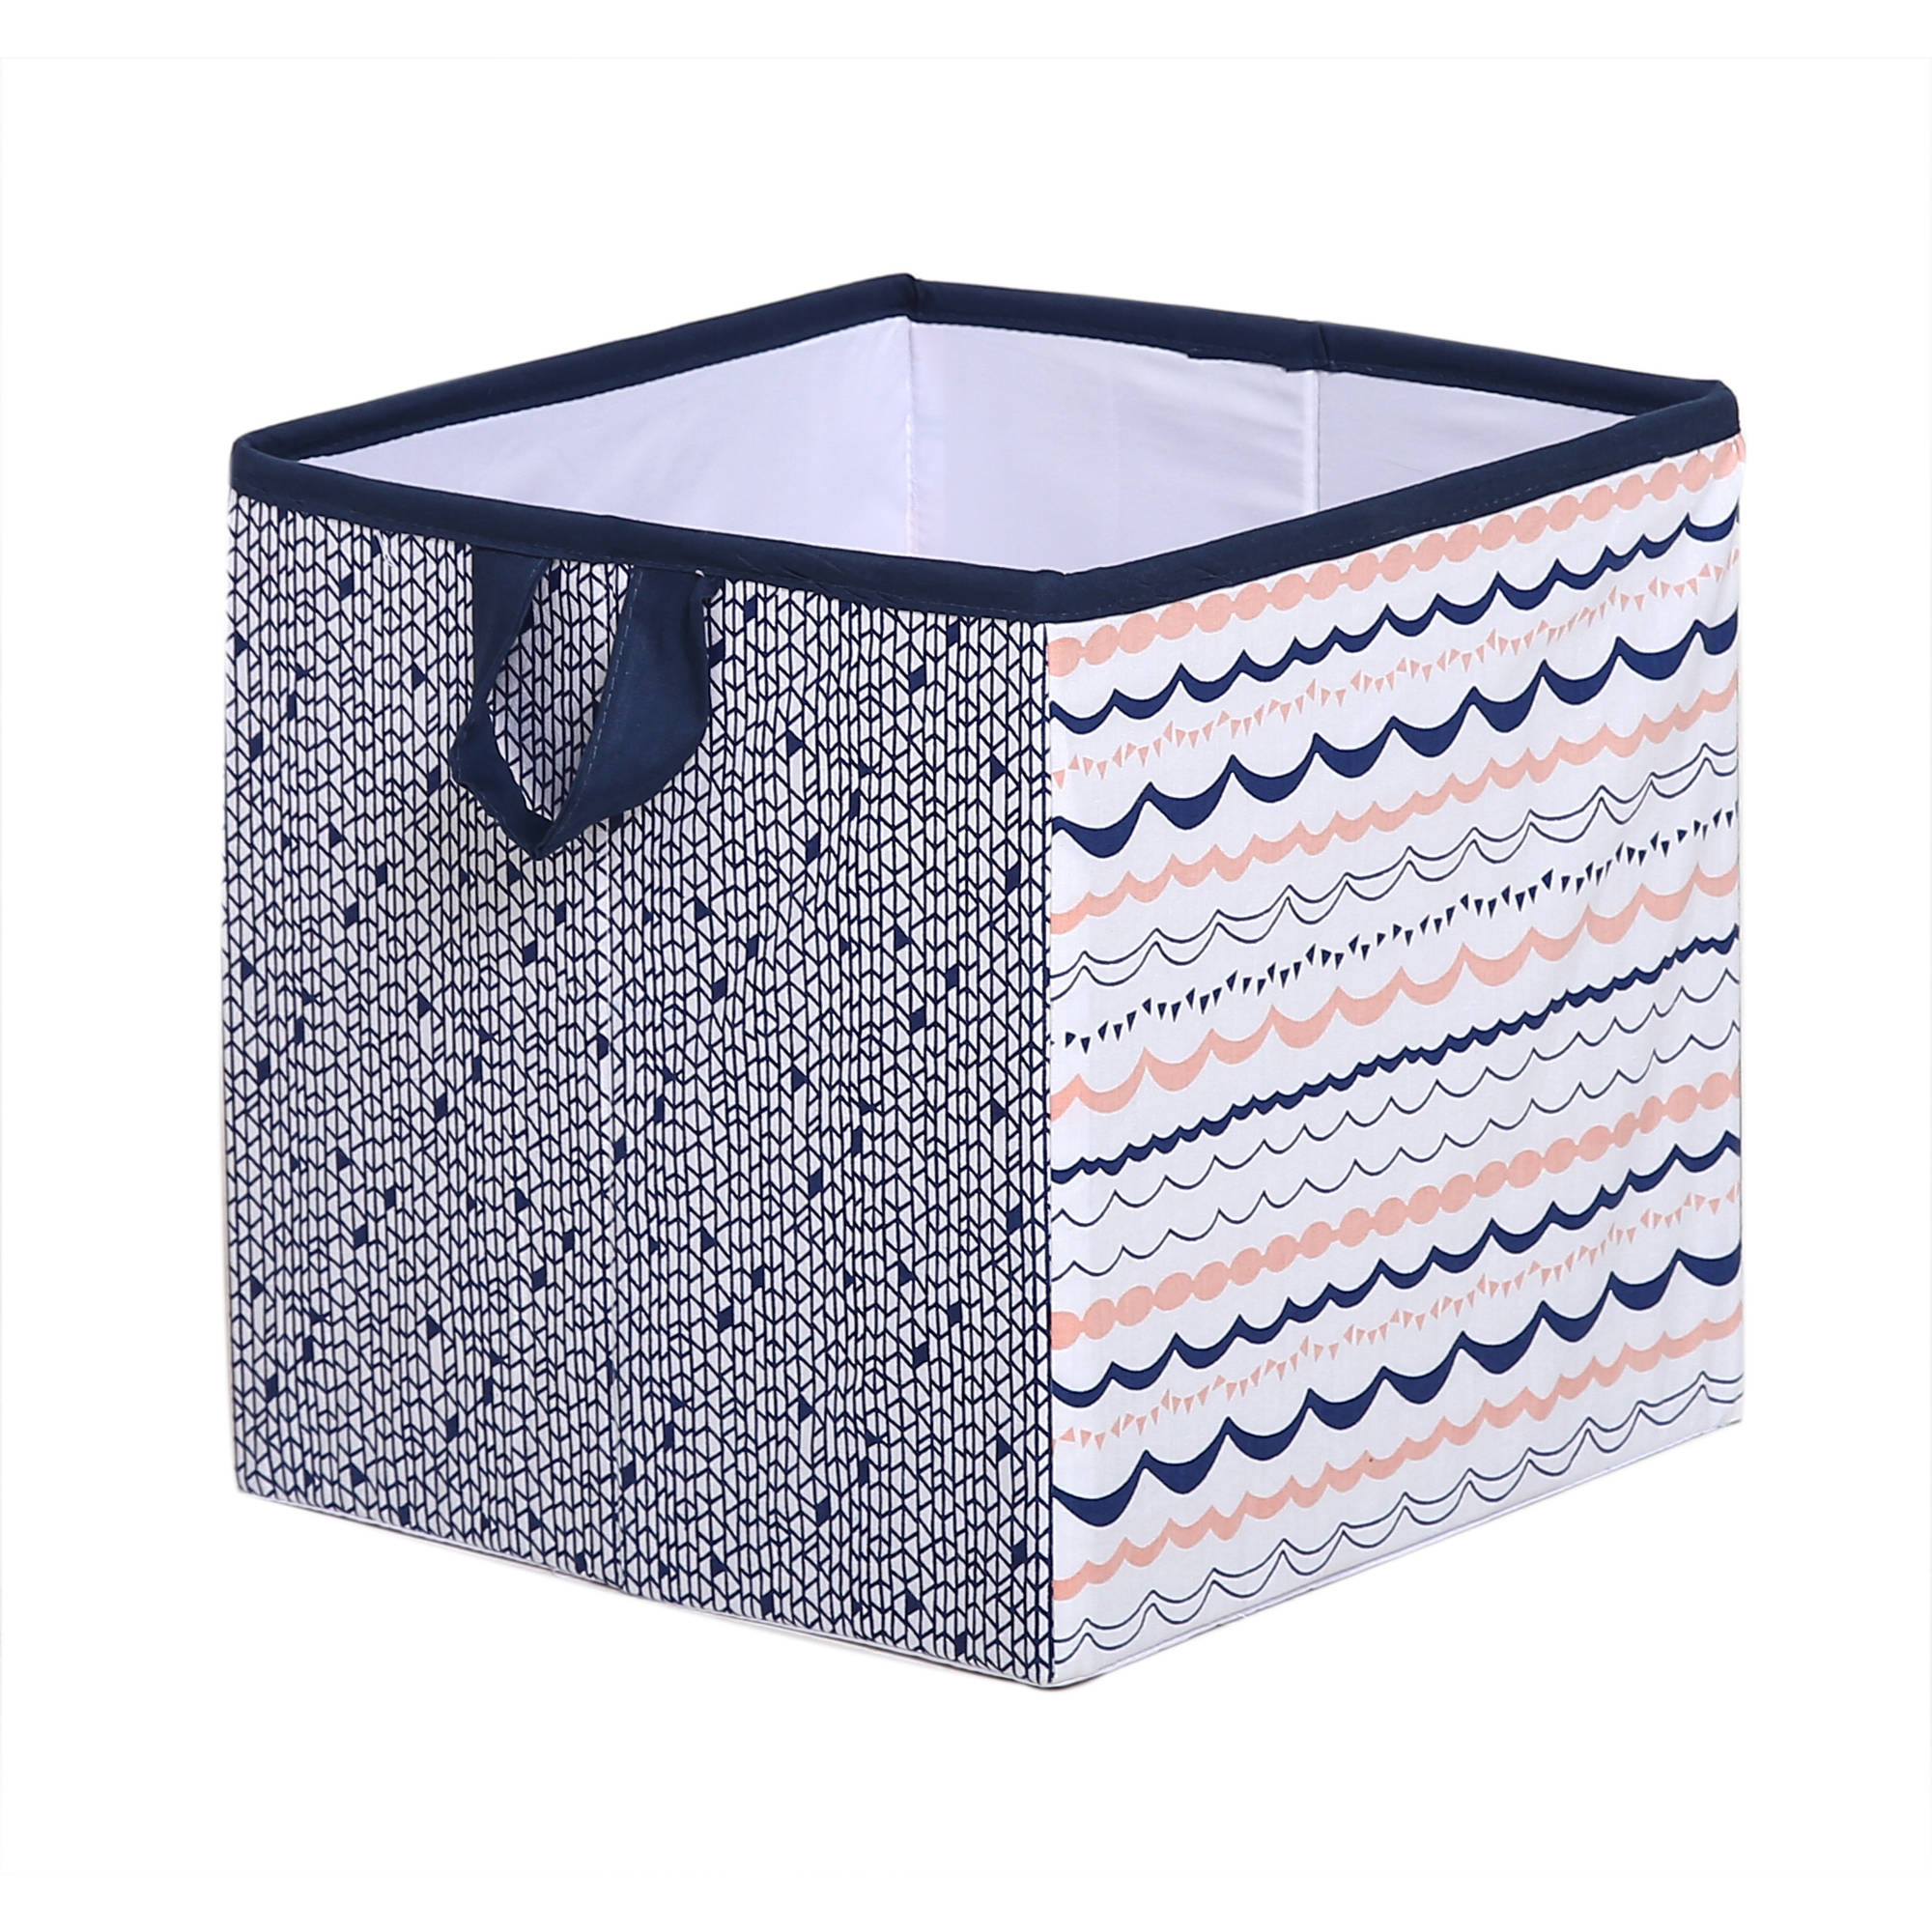 Bacati - Tribal Olivia Coral/Navy Cotton Percale Fabric covered Storage, Small Box, 10 L  x 10 W x 10 H inches